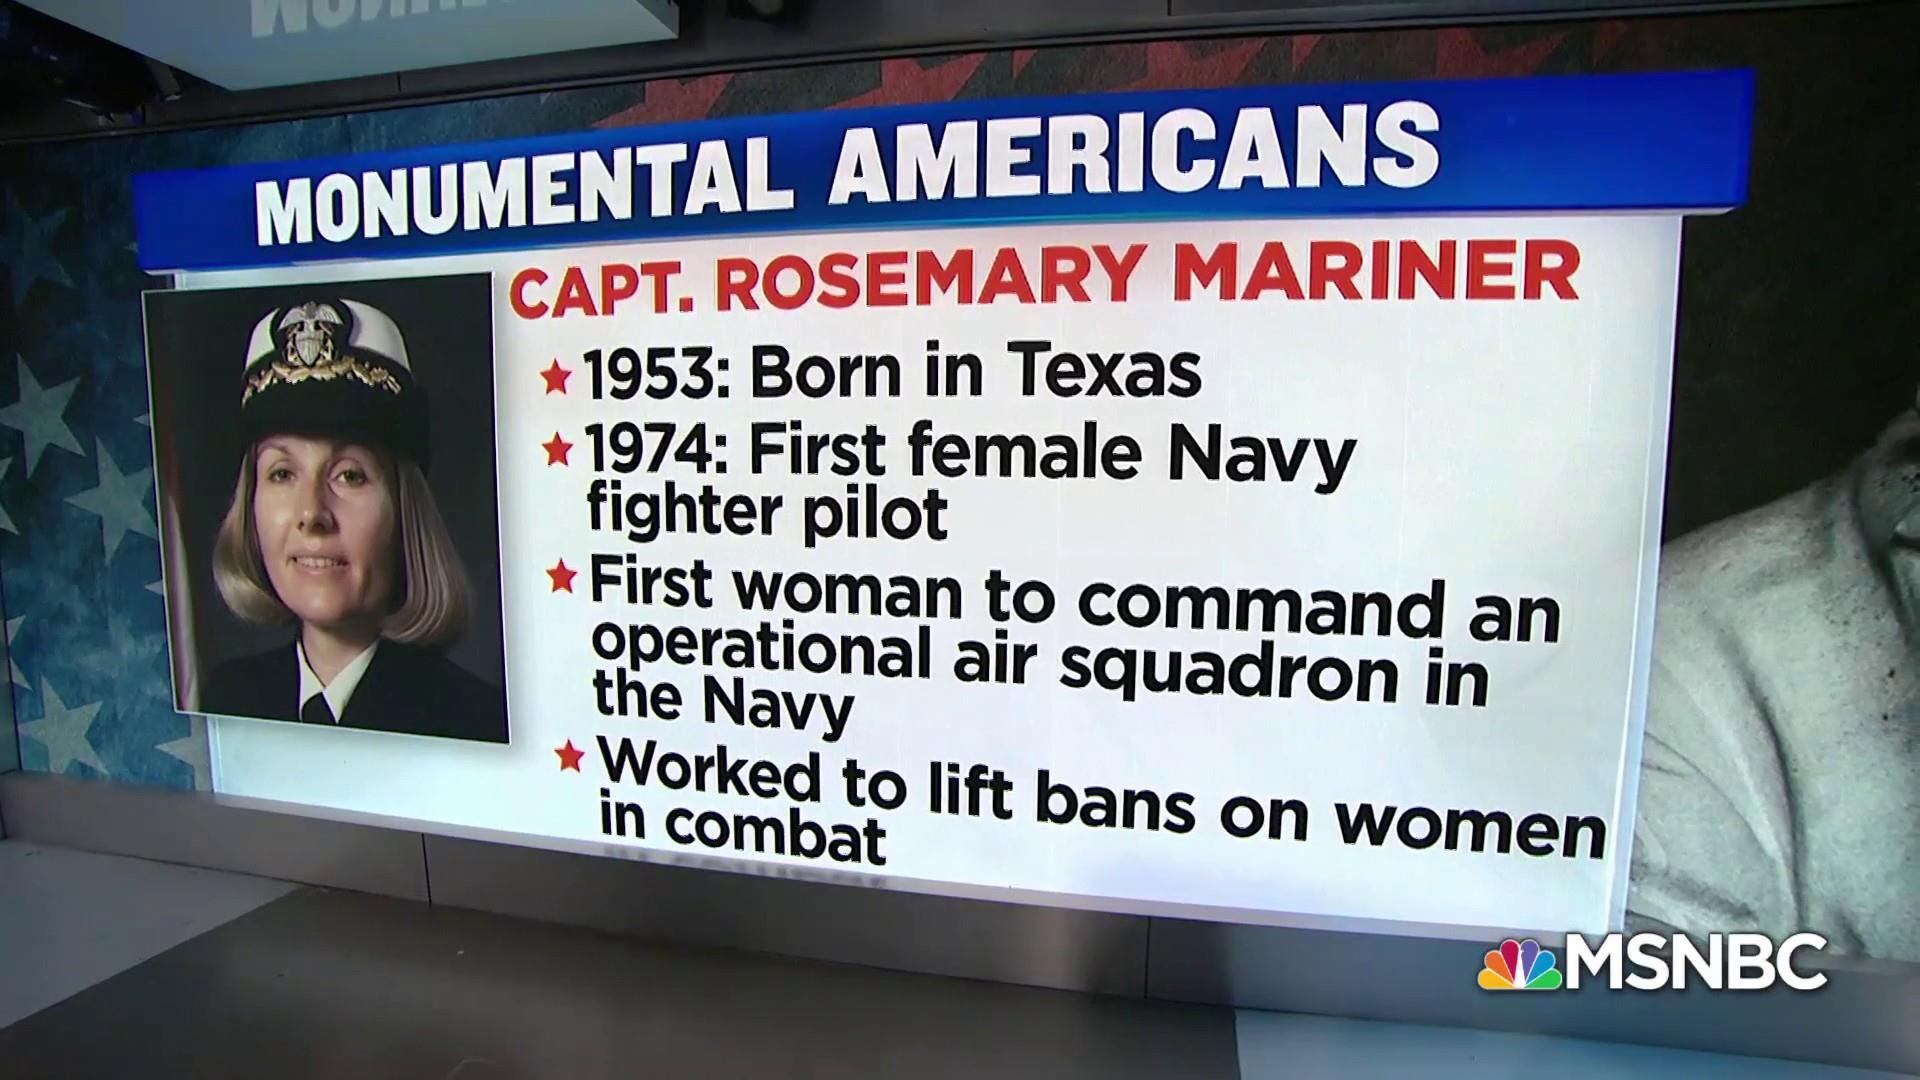 #MonumentalAmerican: the first female Navy fighter pilot